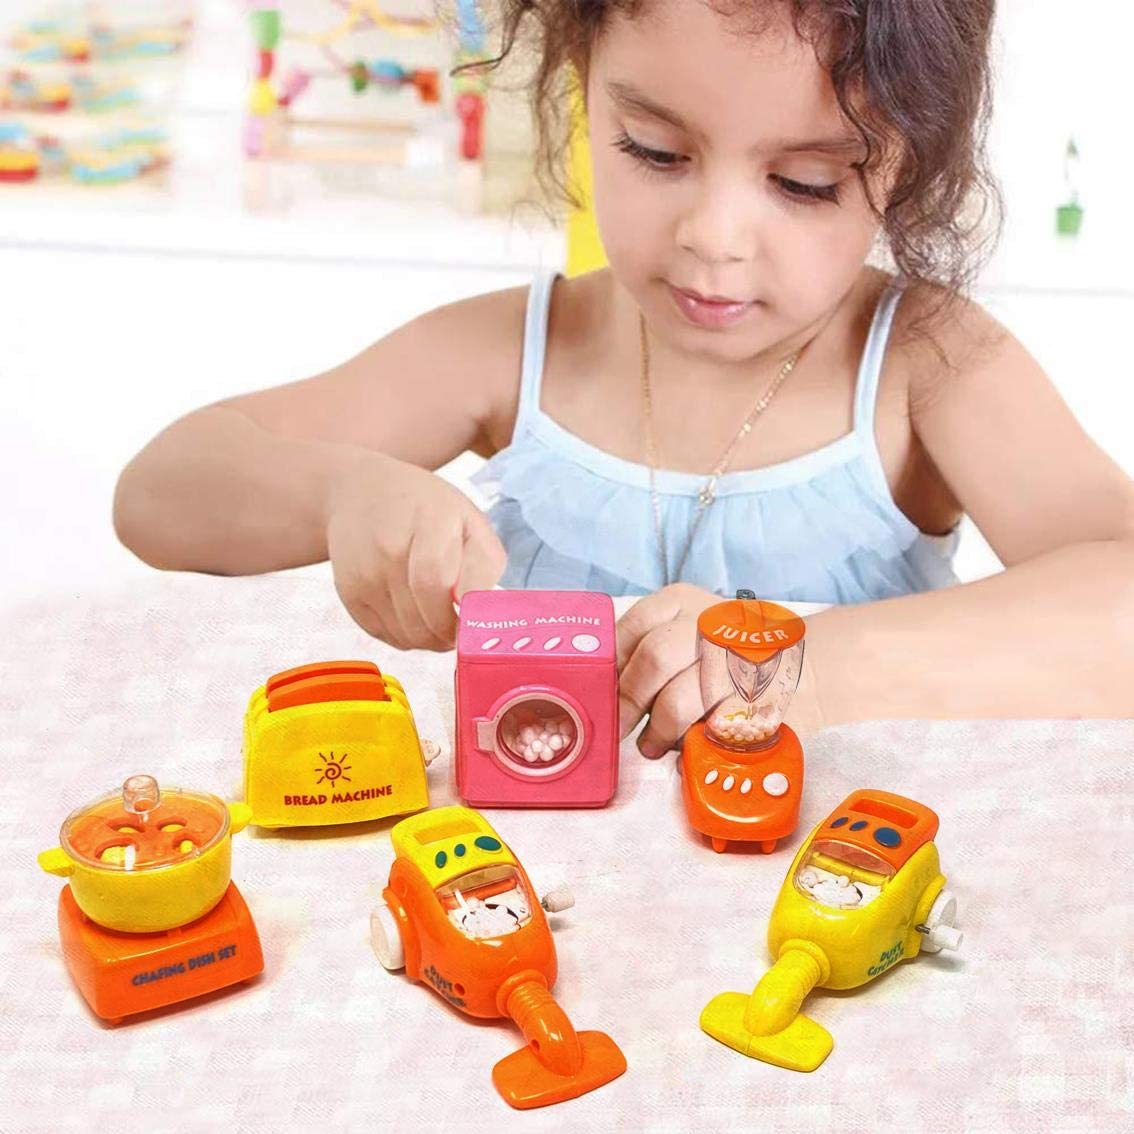 Yellow//Orange King Sport Mini Home Realistic Kitchen Set Little Chef Cook Hours of Role-Playing Fun Appliances Toaster Juicer Interactive Early Learning Set of 6